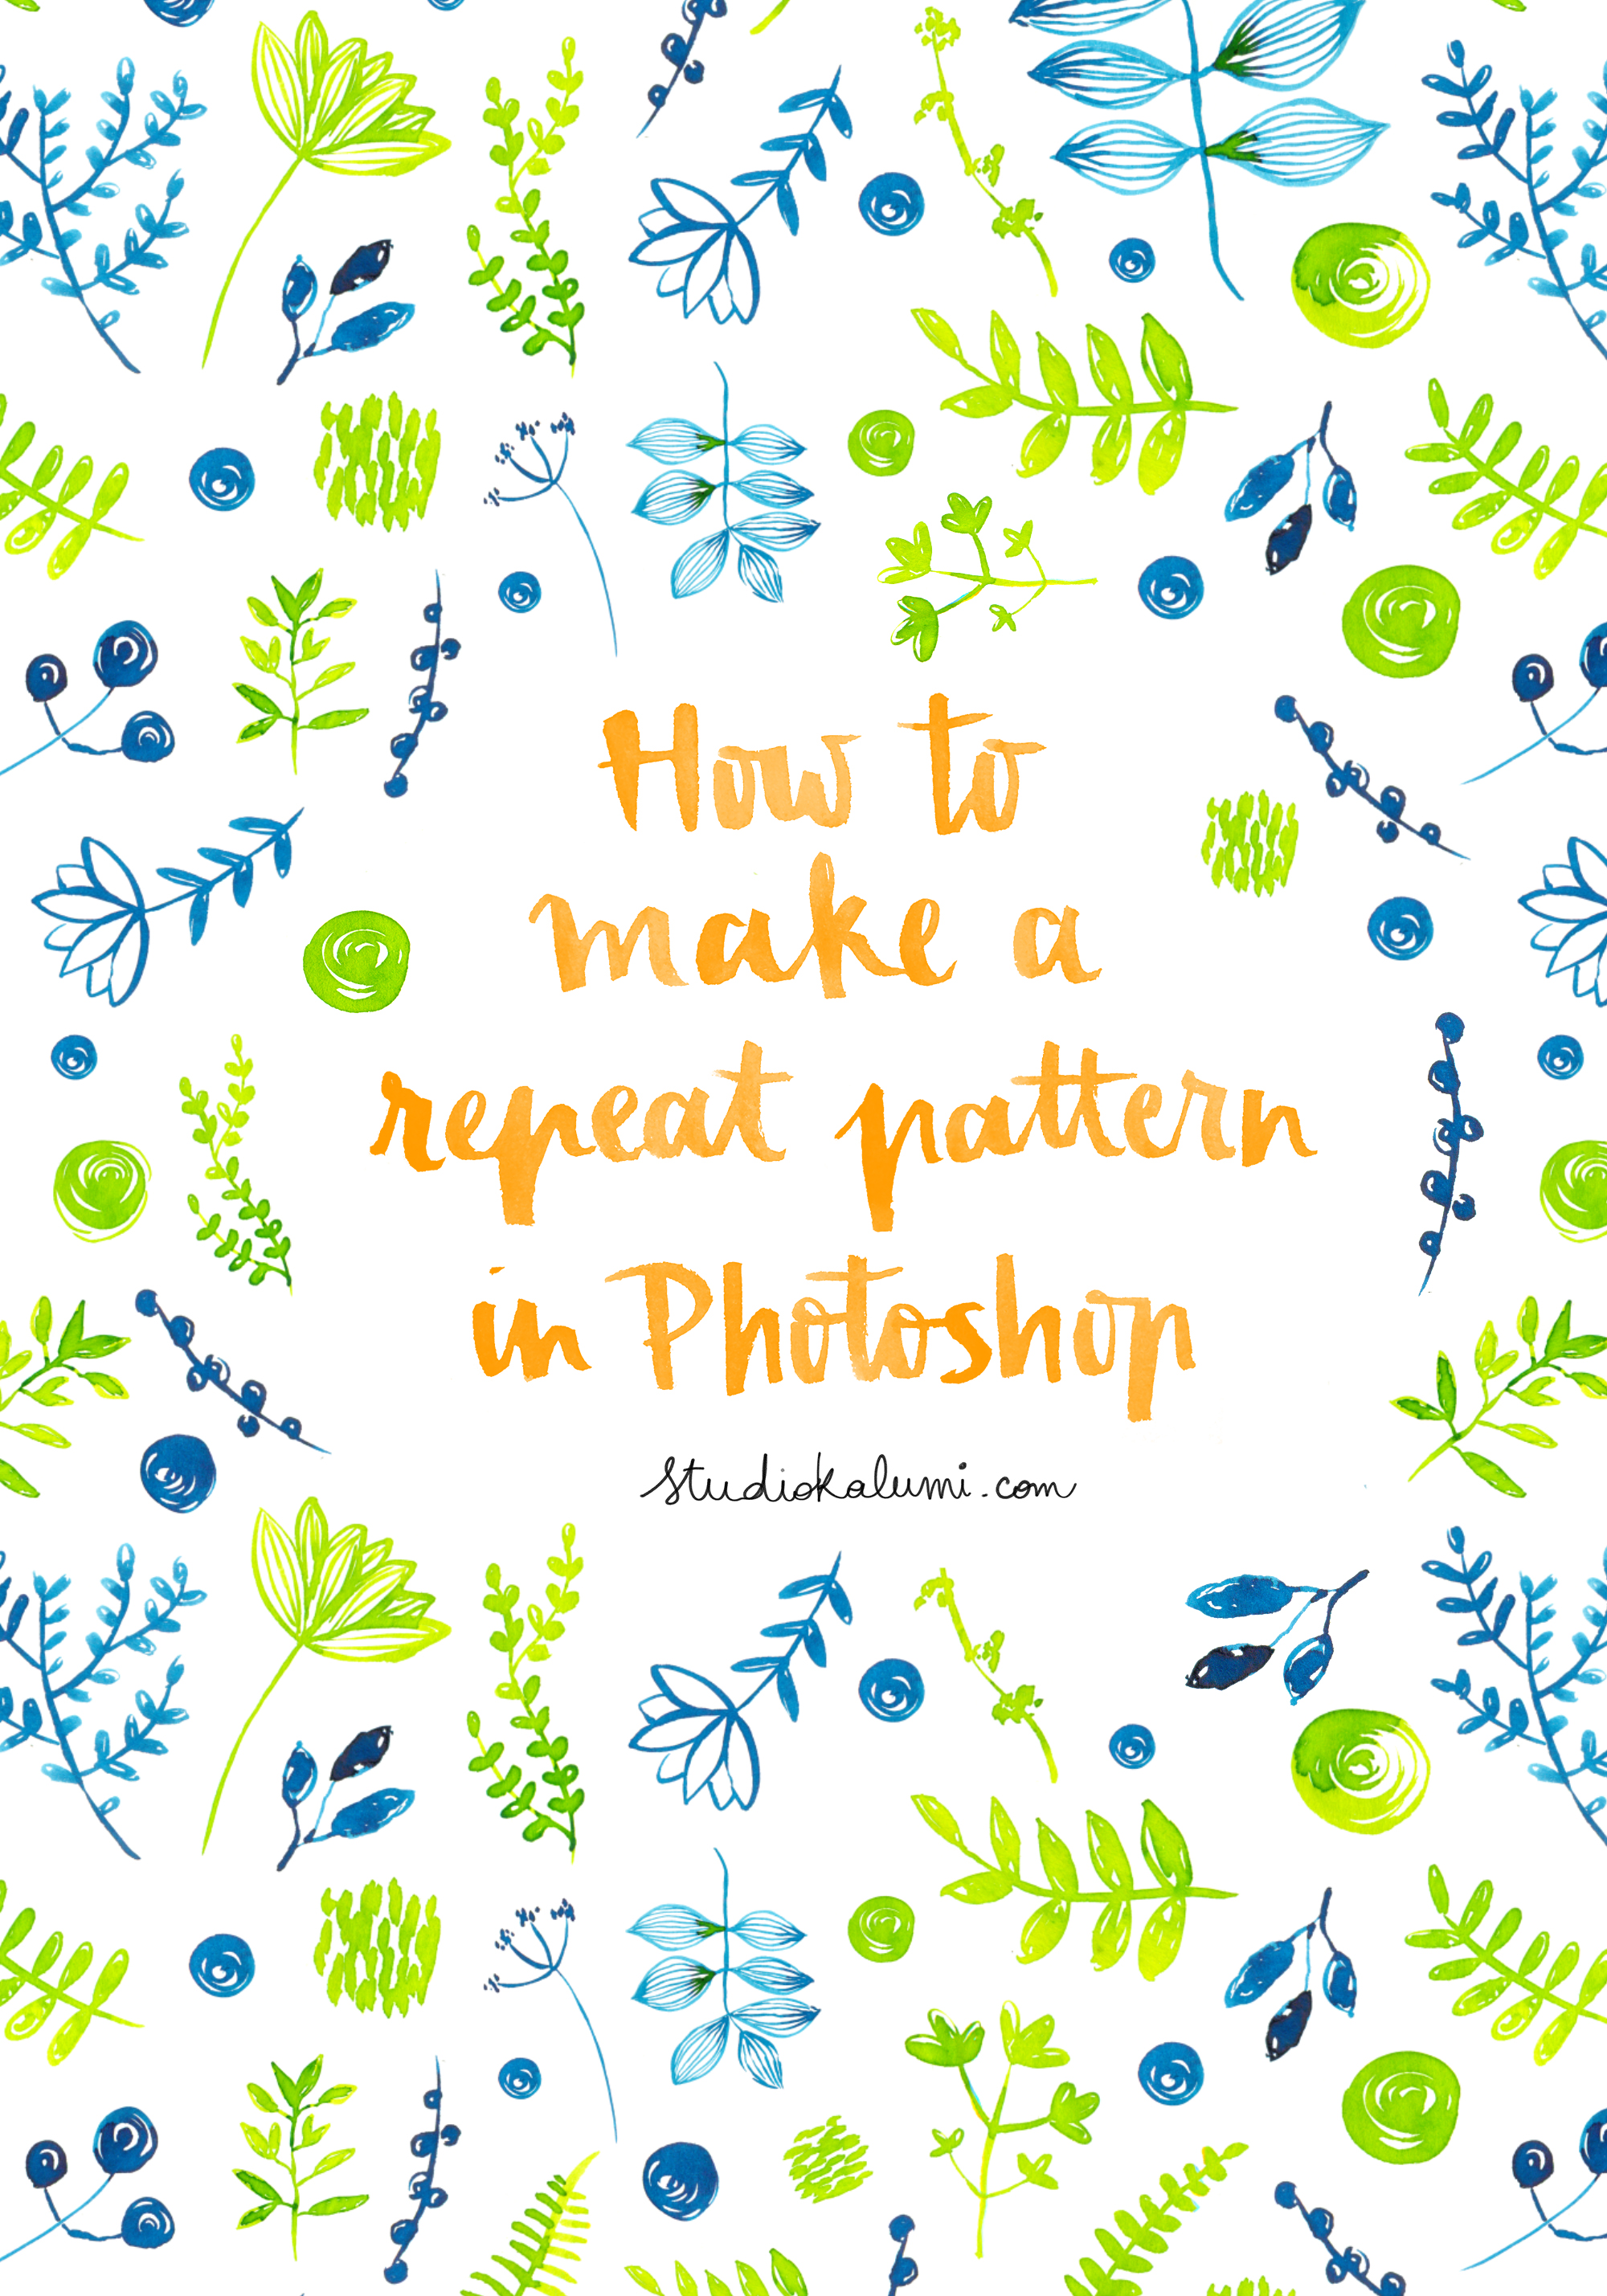 how to make a repeat pattern in Photoshop